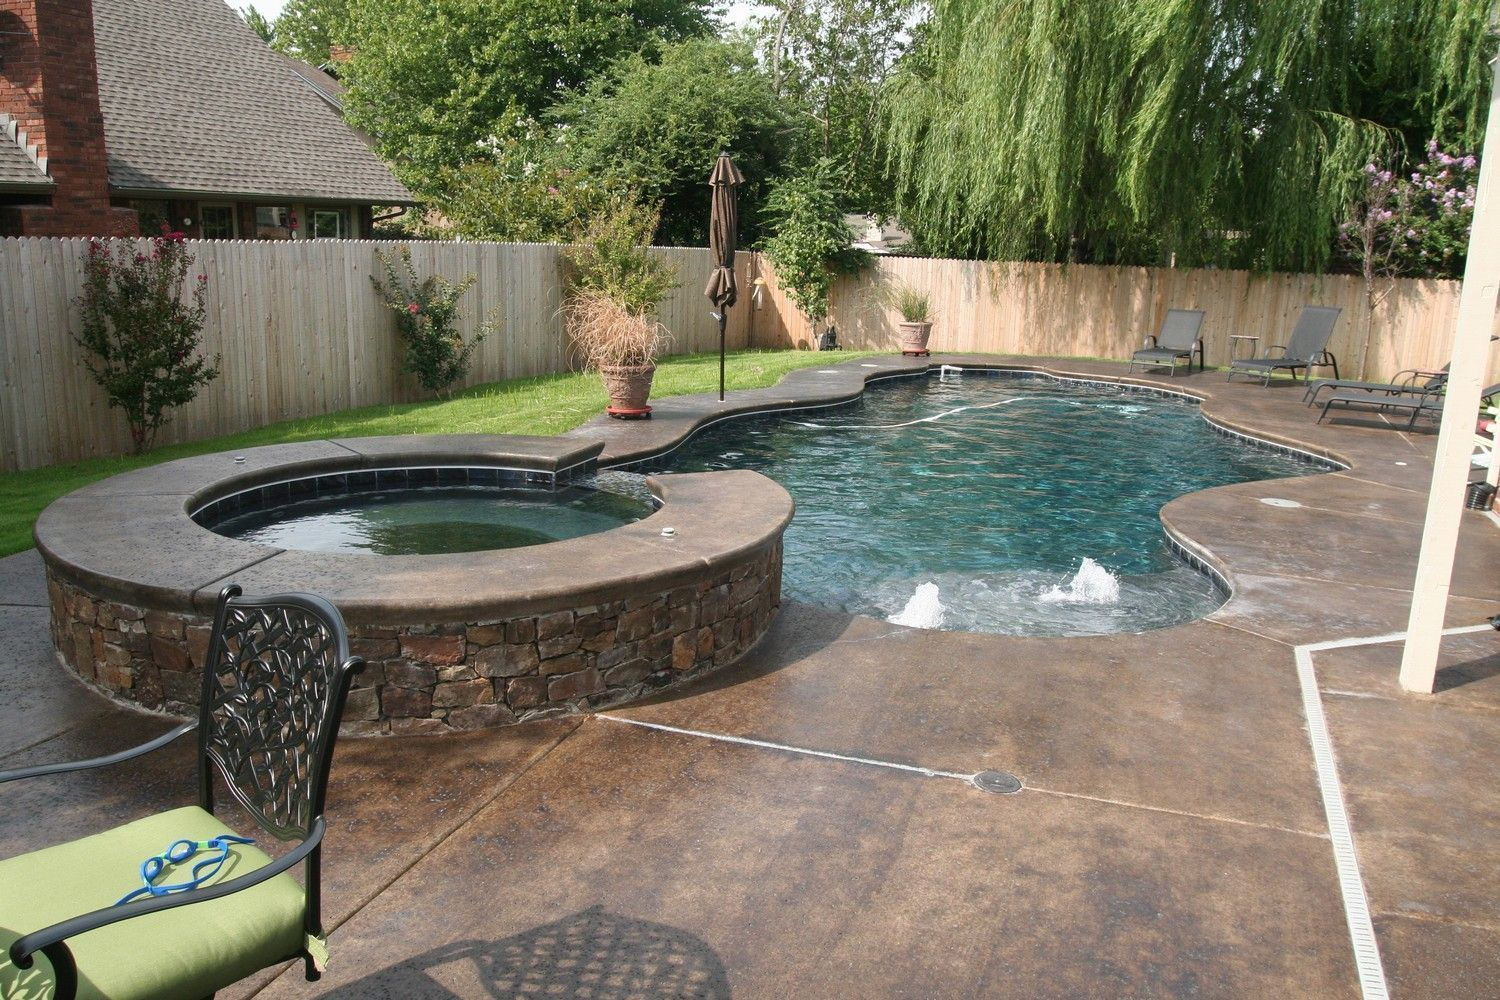 Putting A Jacuzzi Outdoors And Discovering A Great View Will Assist You Unwind And Develop An Inner Outdoor Remodel Small Backyard Pools Backyard Pool Designs